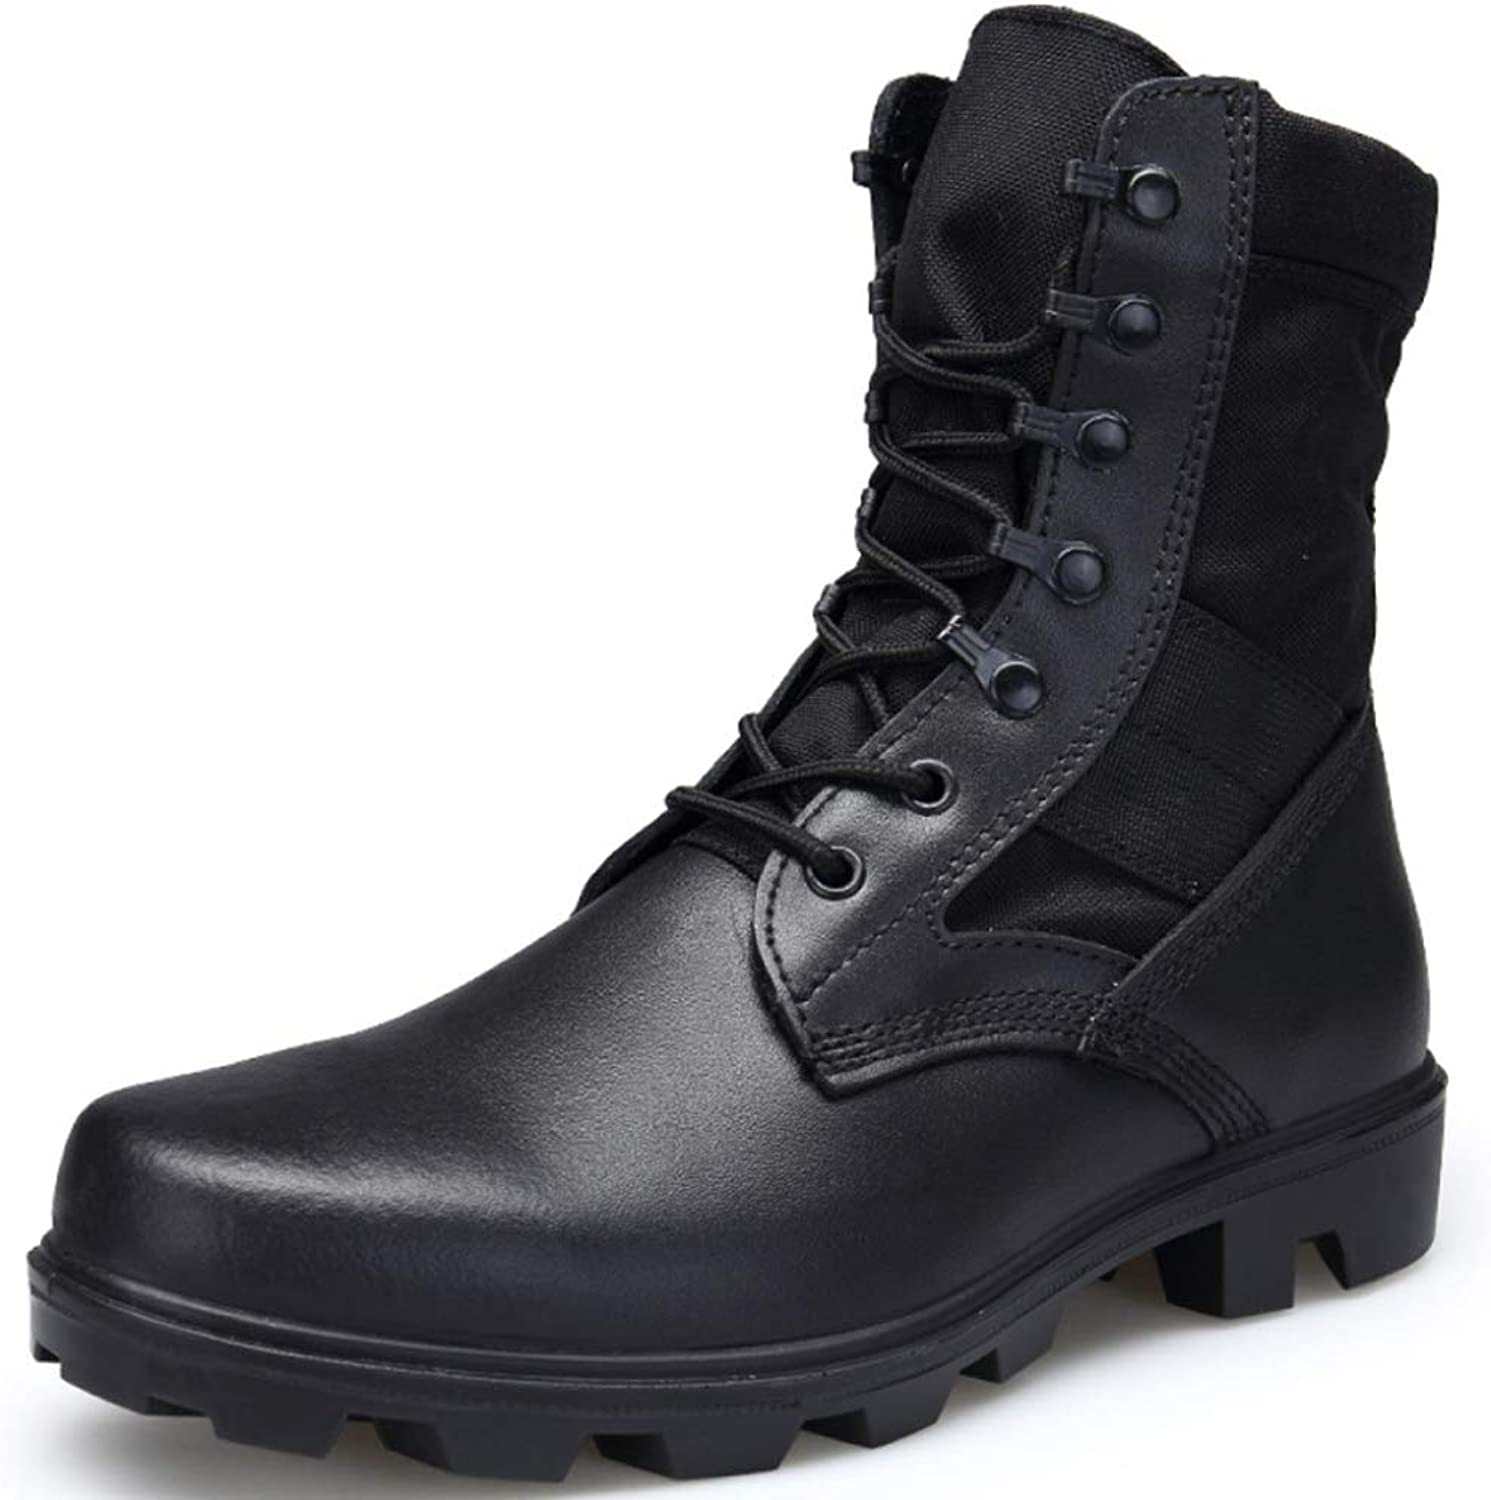 Mens Leather shoes Vintage Martin Boot Outdoor Desert Military Combat Boots Army Armed Tactics shoes Special Forces Footwear